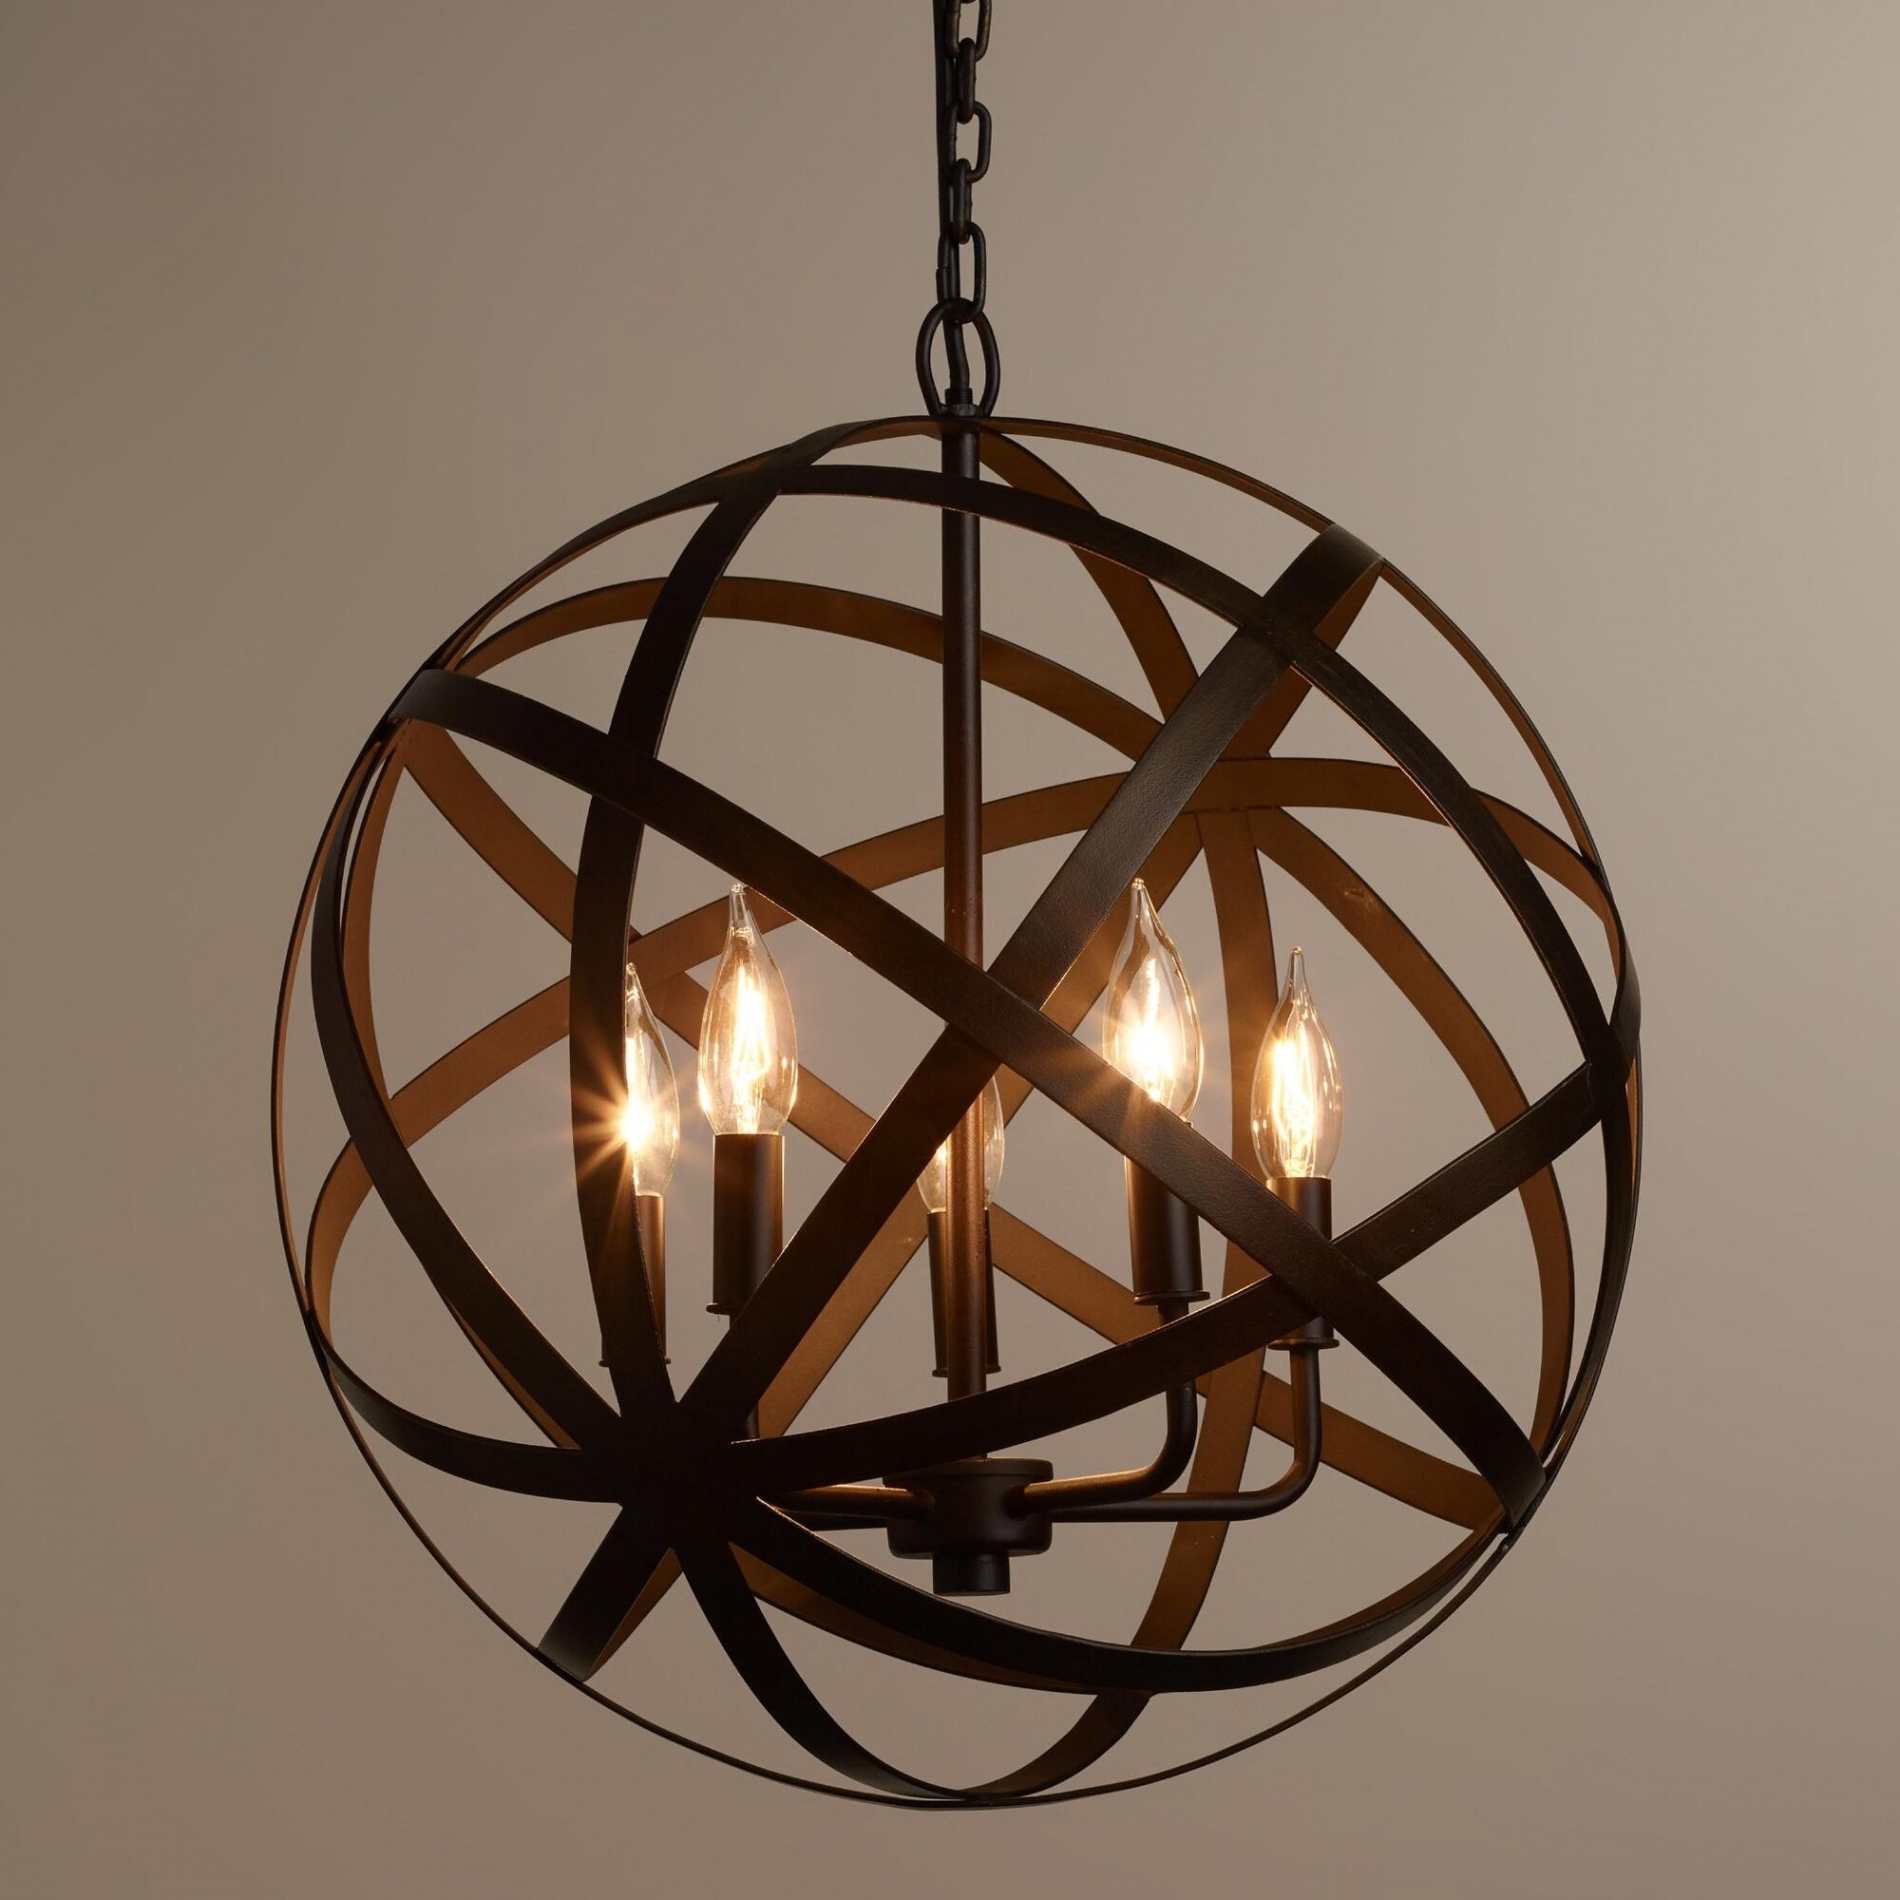 Orb Chandeliers Pertaining To Widely Used Chandeliers : Restoration Hardware Orb Chandelier Fresh Unique Orb (View 4 of 20)